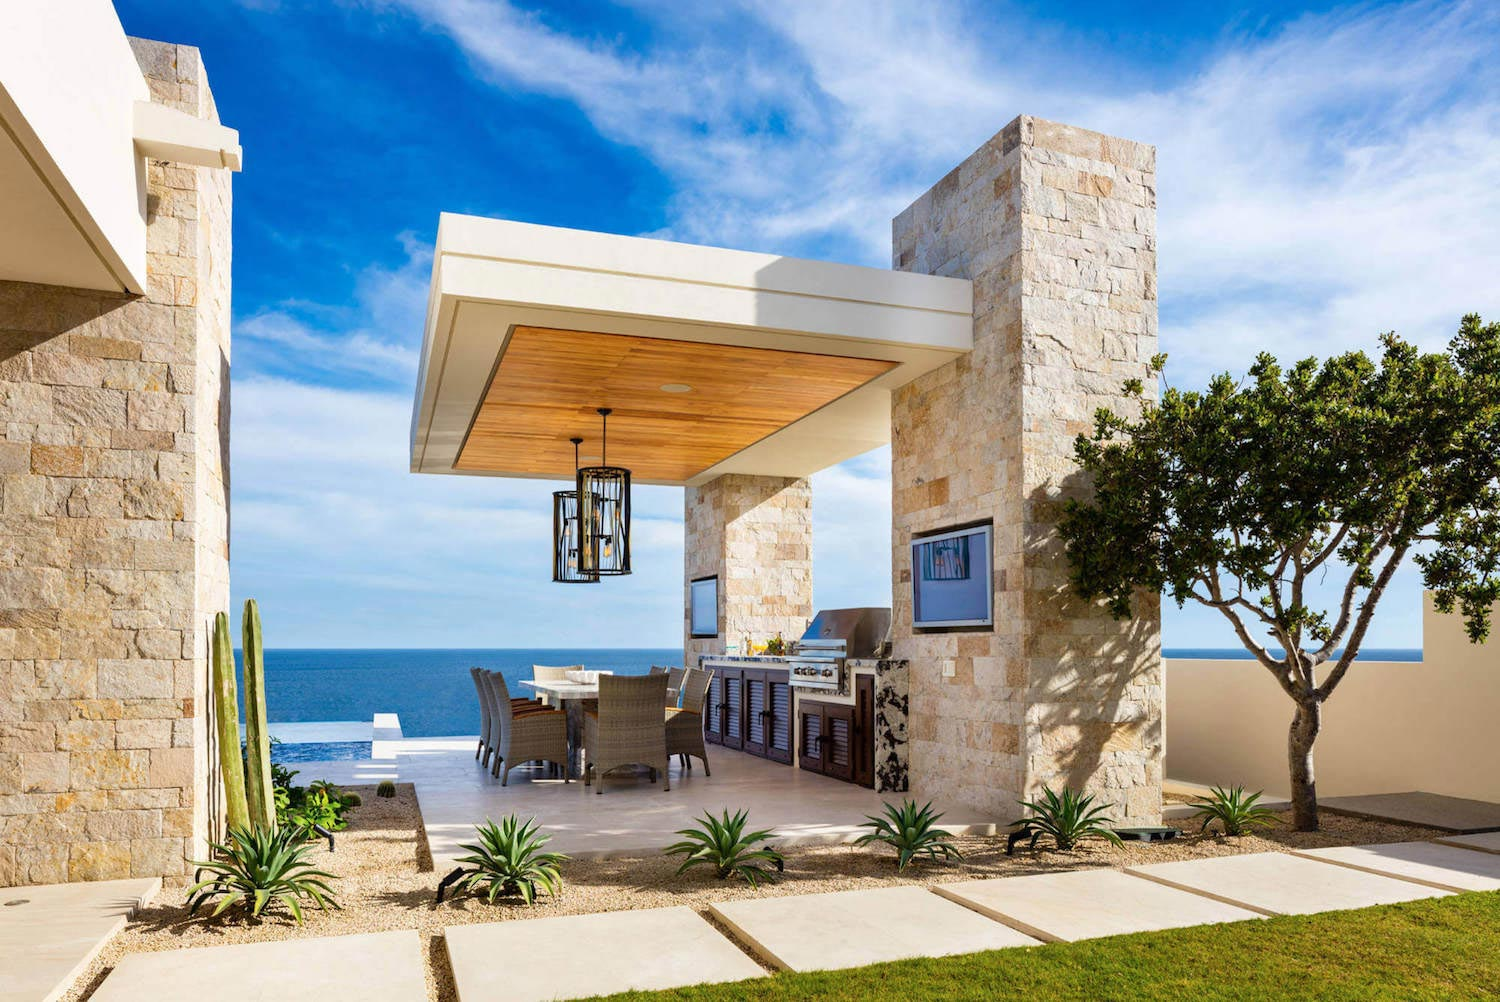 luxury-beach-house-situated-el-dorado-california-denton-house-design ...